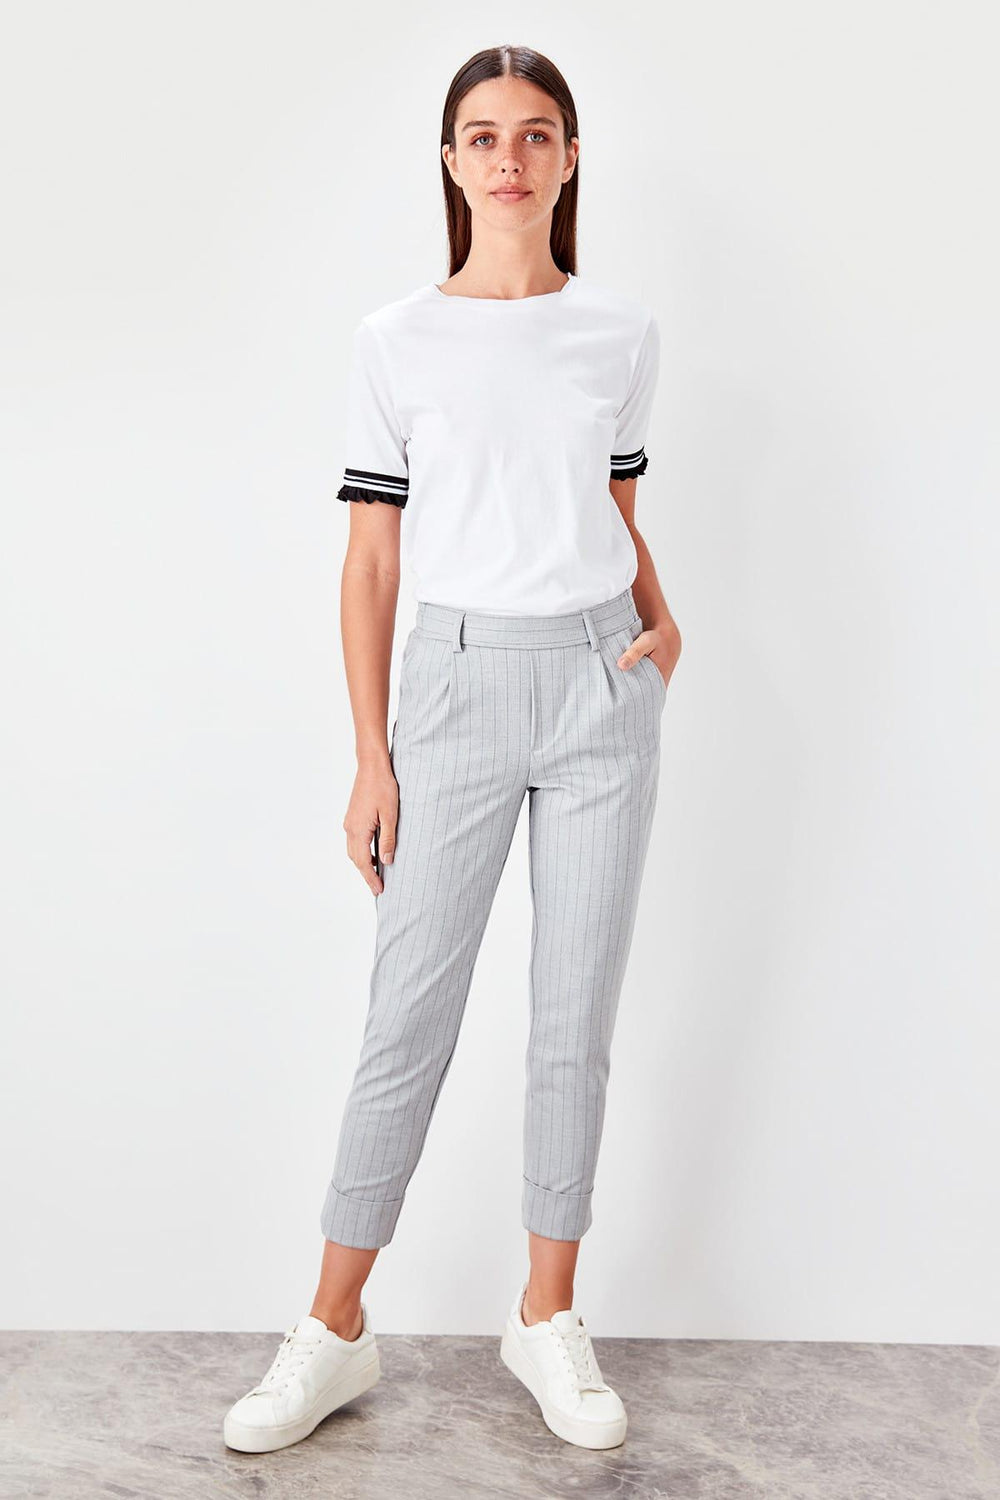 Miss Zut Miss Zut Gray Striped Pants Miss Zut &CO